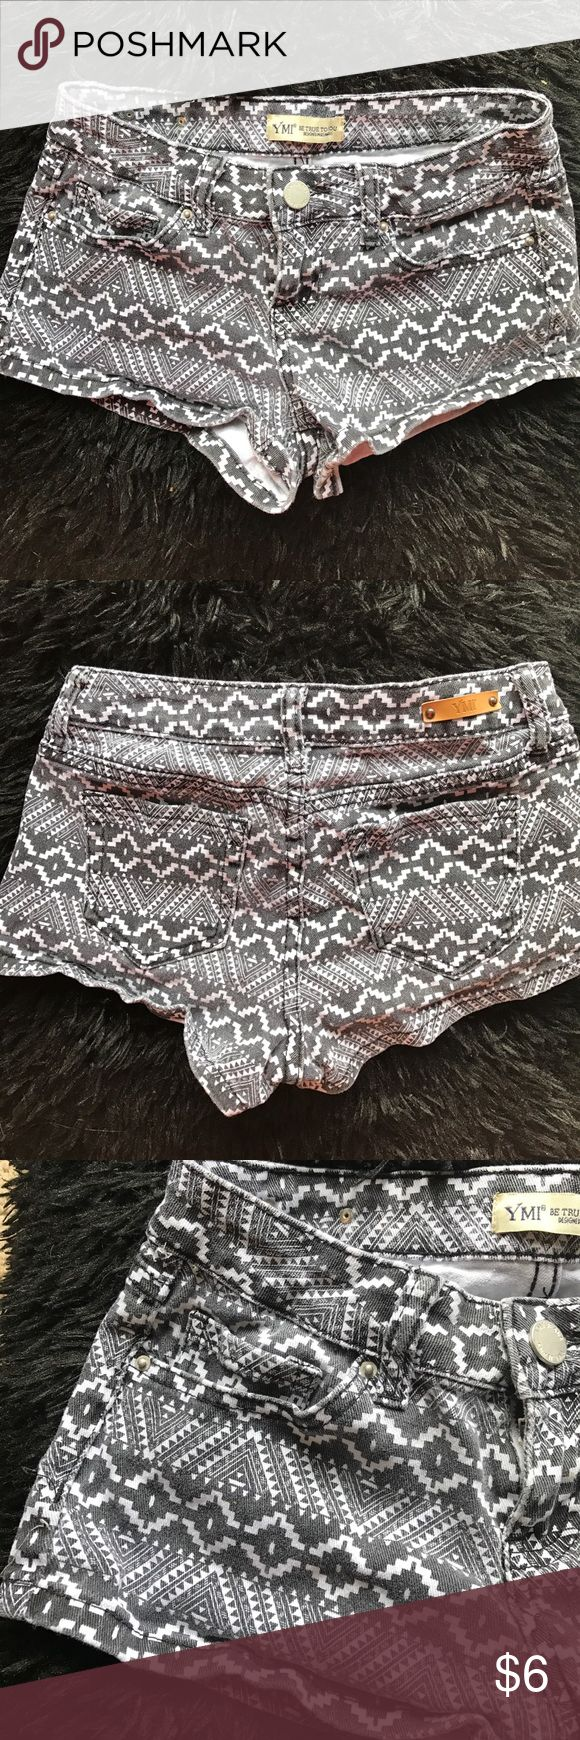 Black and White Aztec shorts YMI black and white Aztec shorts. Great condition. I've worn them about 5 times. Have a hard time letting them go, but they need a better home. 9 inches long in back YMI Shorts Jean Shorts